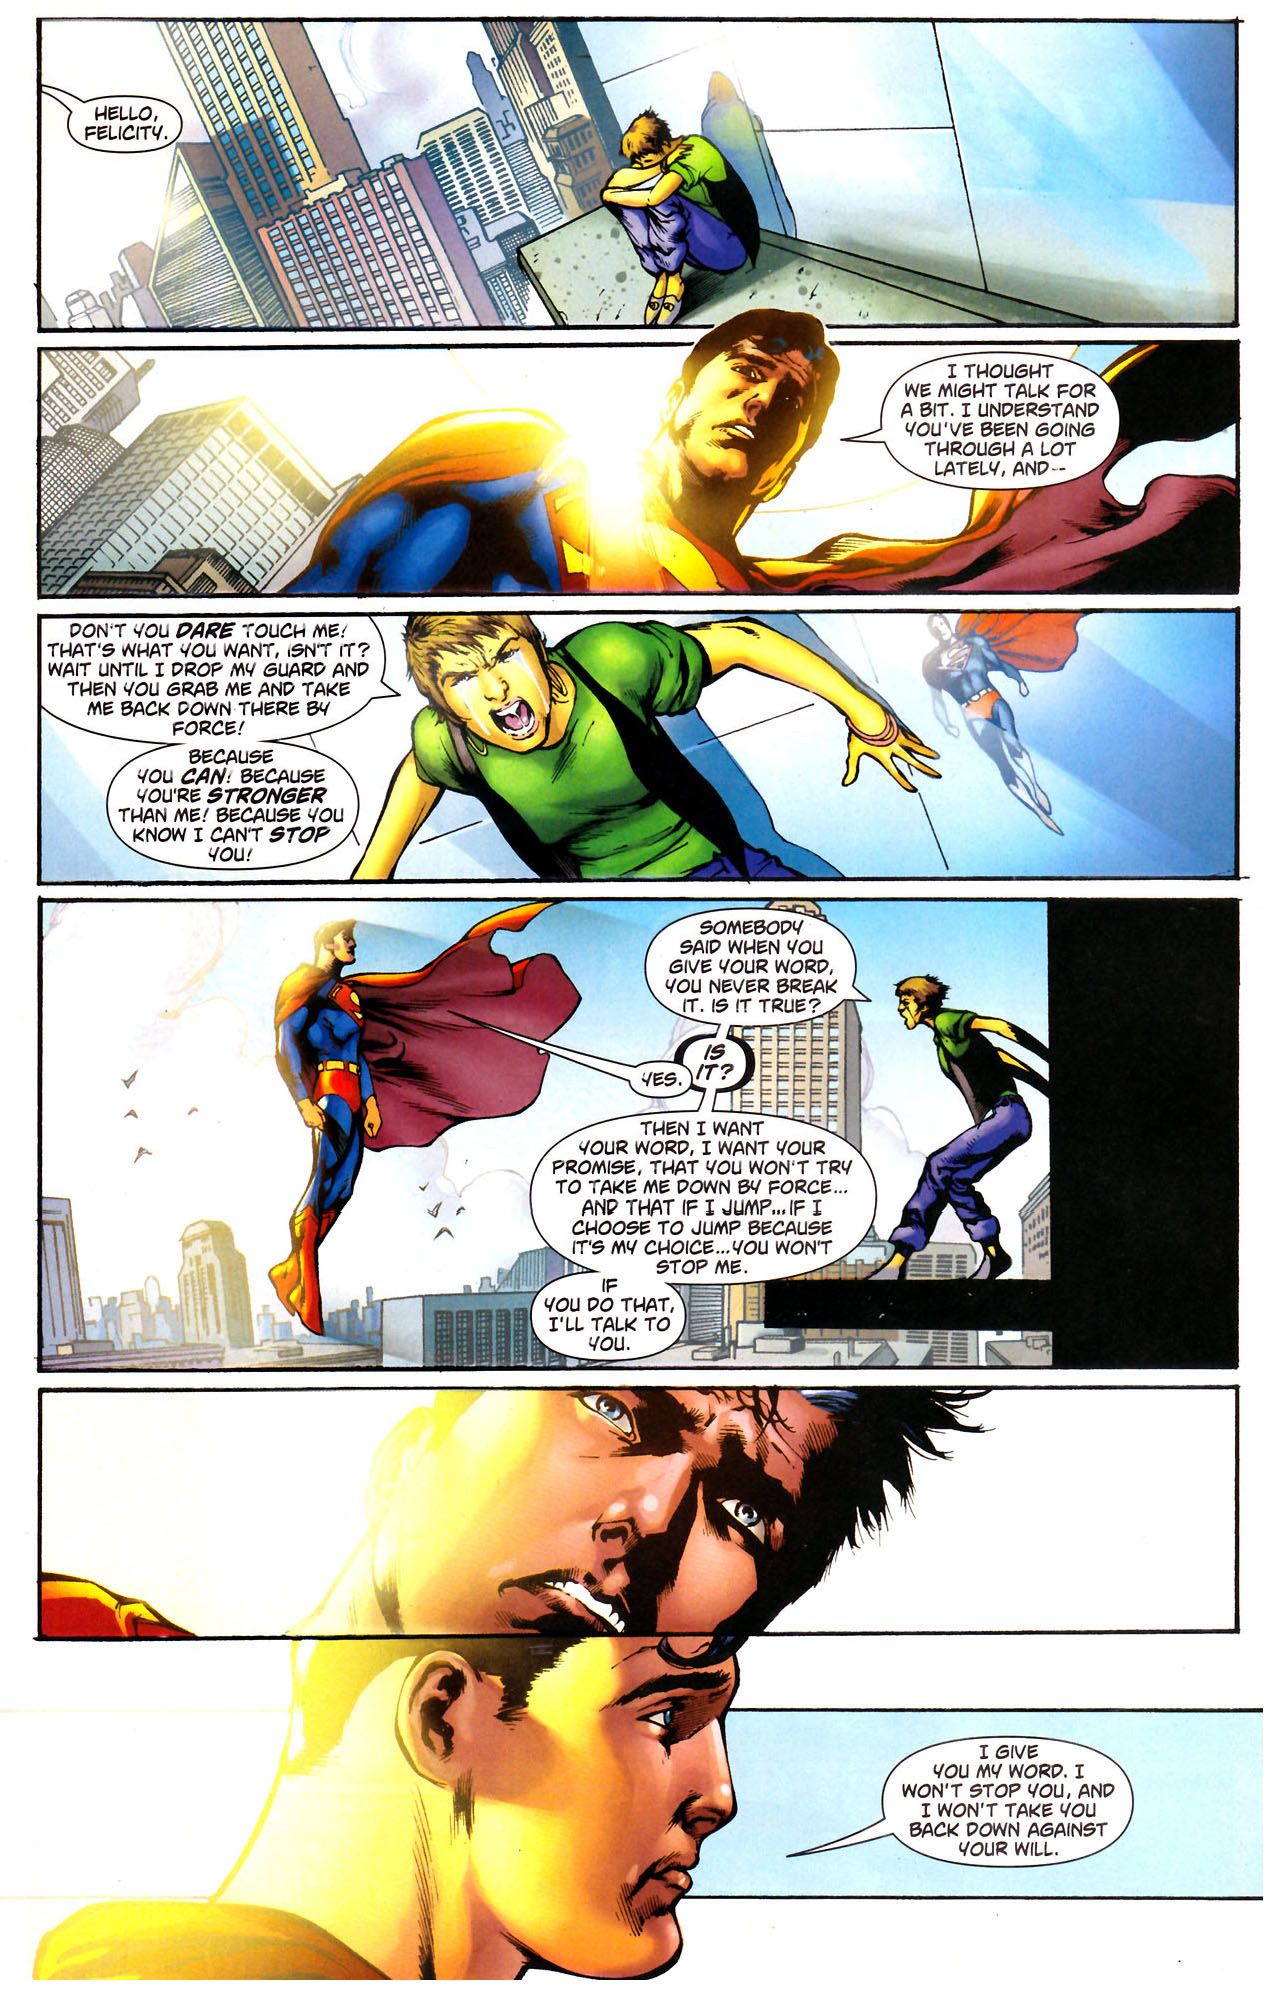 superman's opinion on suicide 1